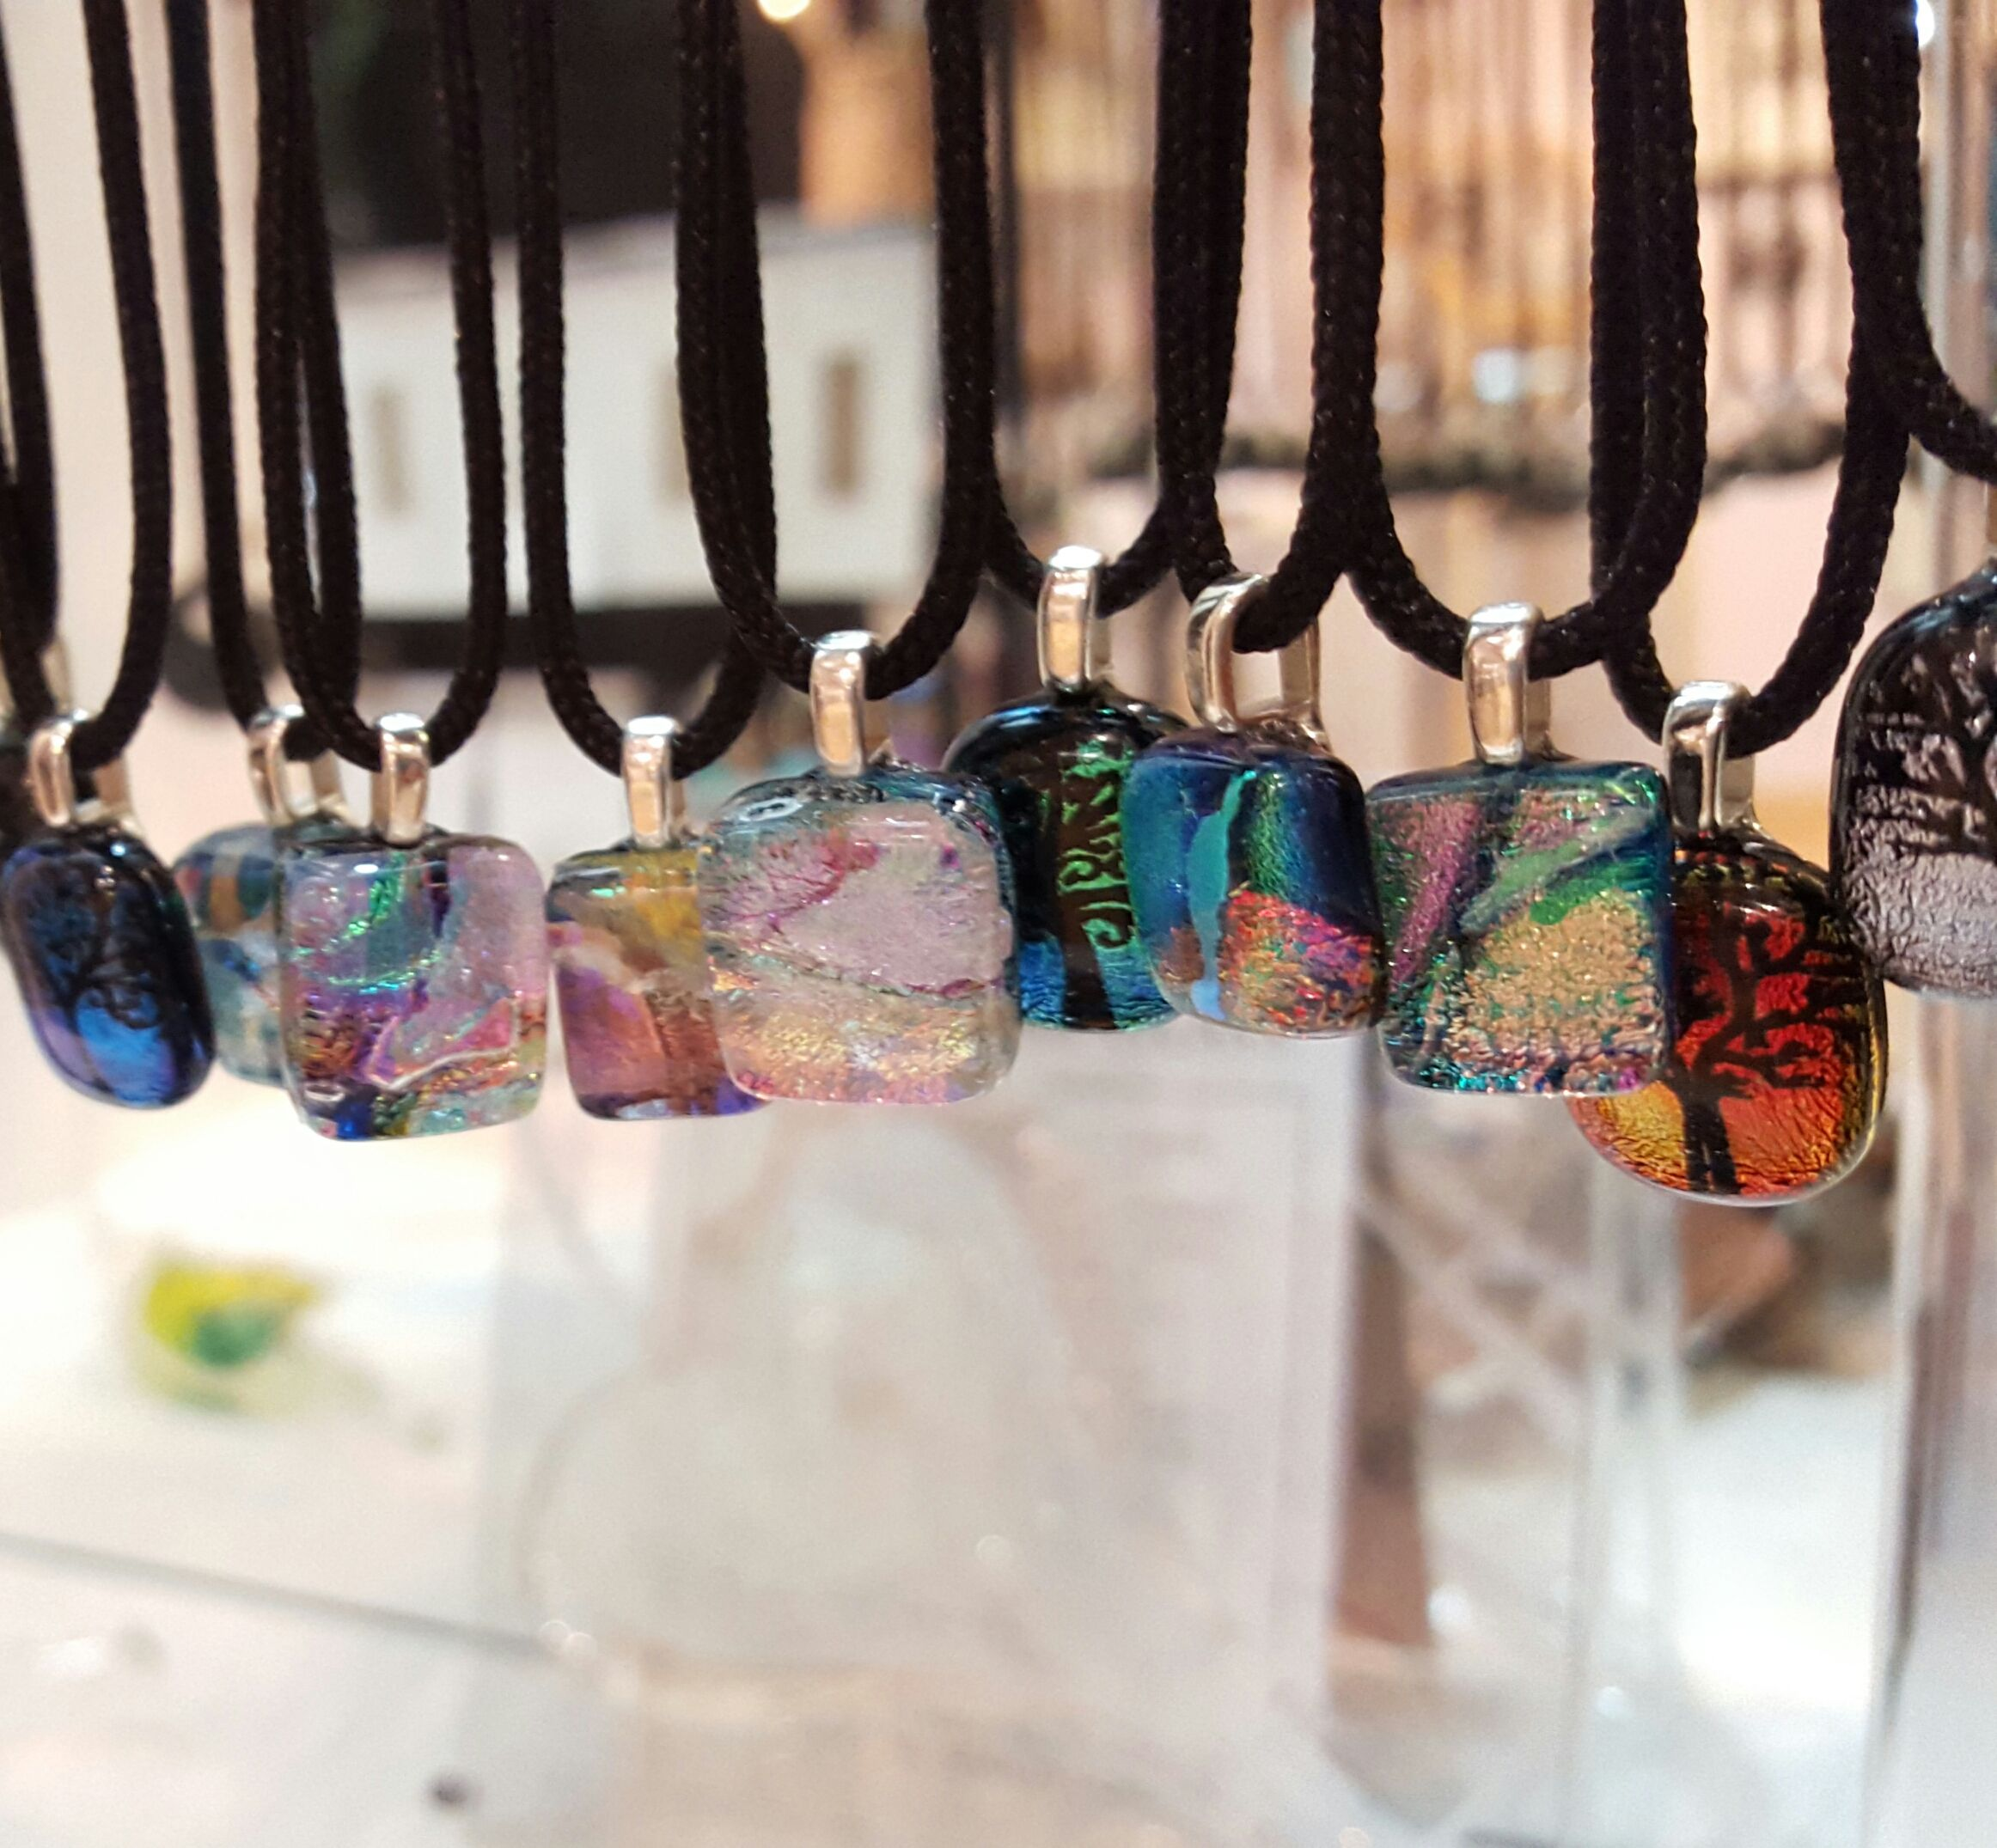 Sometimes fashionistas start young. For the young lady who knows style, we have small dichroic necklaces ($22) and stud earrings ($14) perfect to accent any outfit.